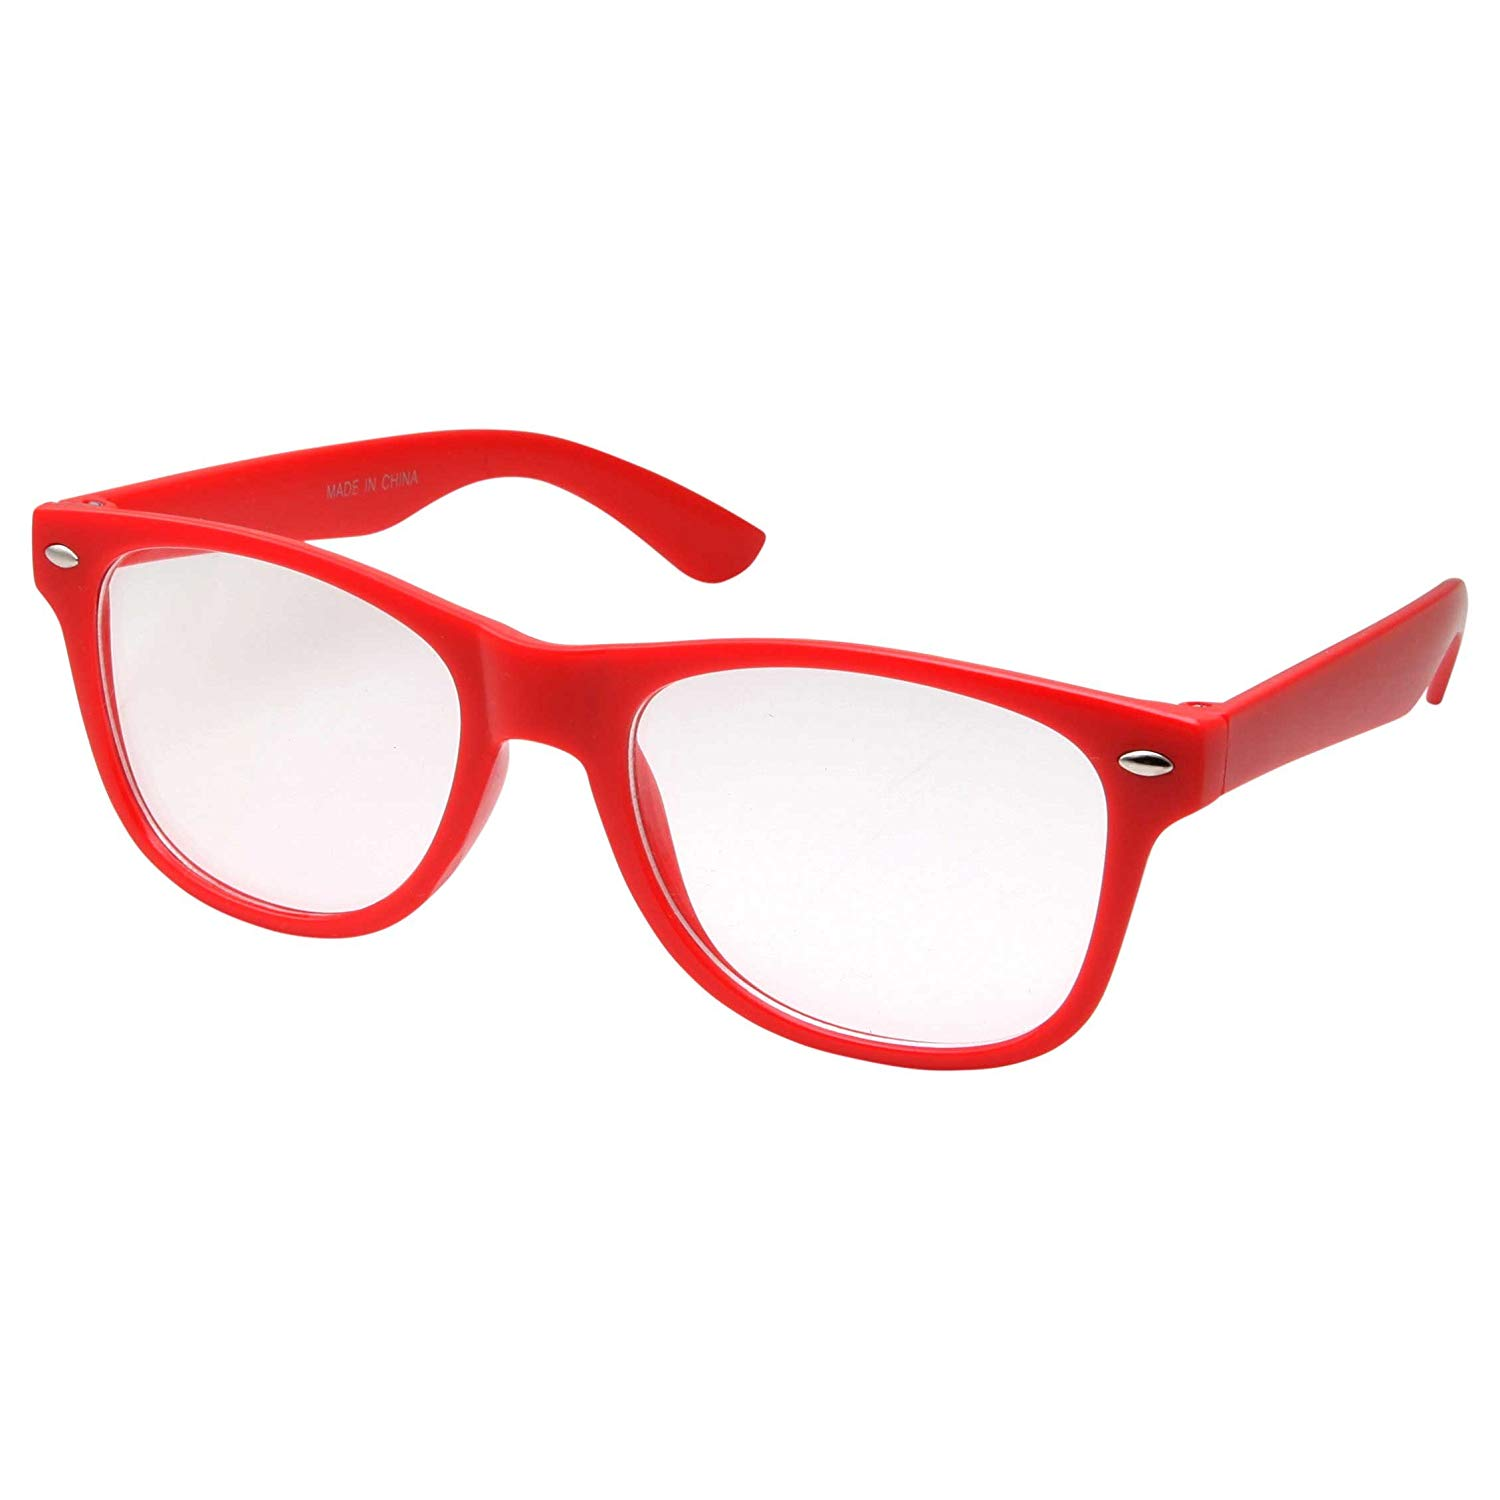 87ecbc5057 Get Quotations · Kids Nerd Glasses Clear Lens Geek Fake for Costume  Children s (Age ...